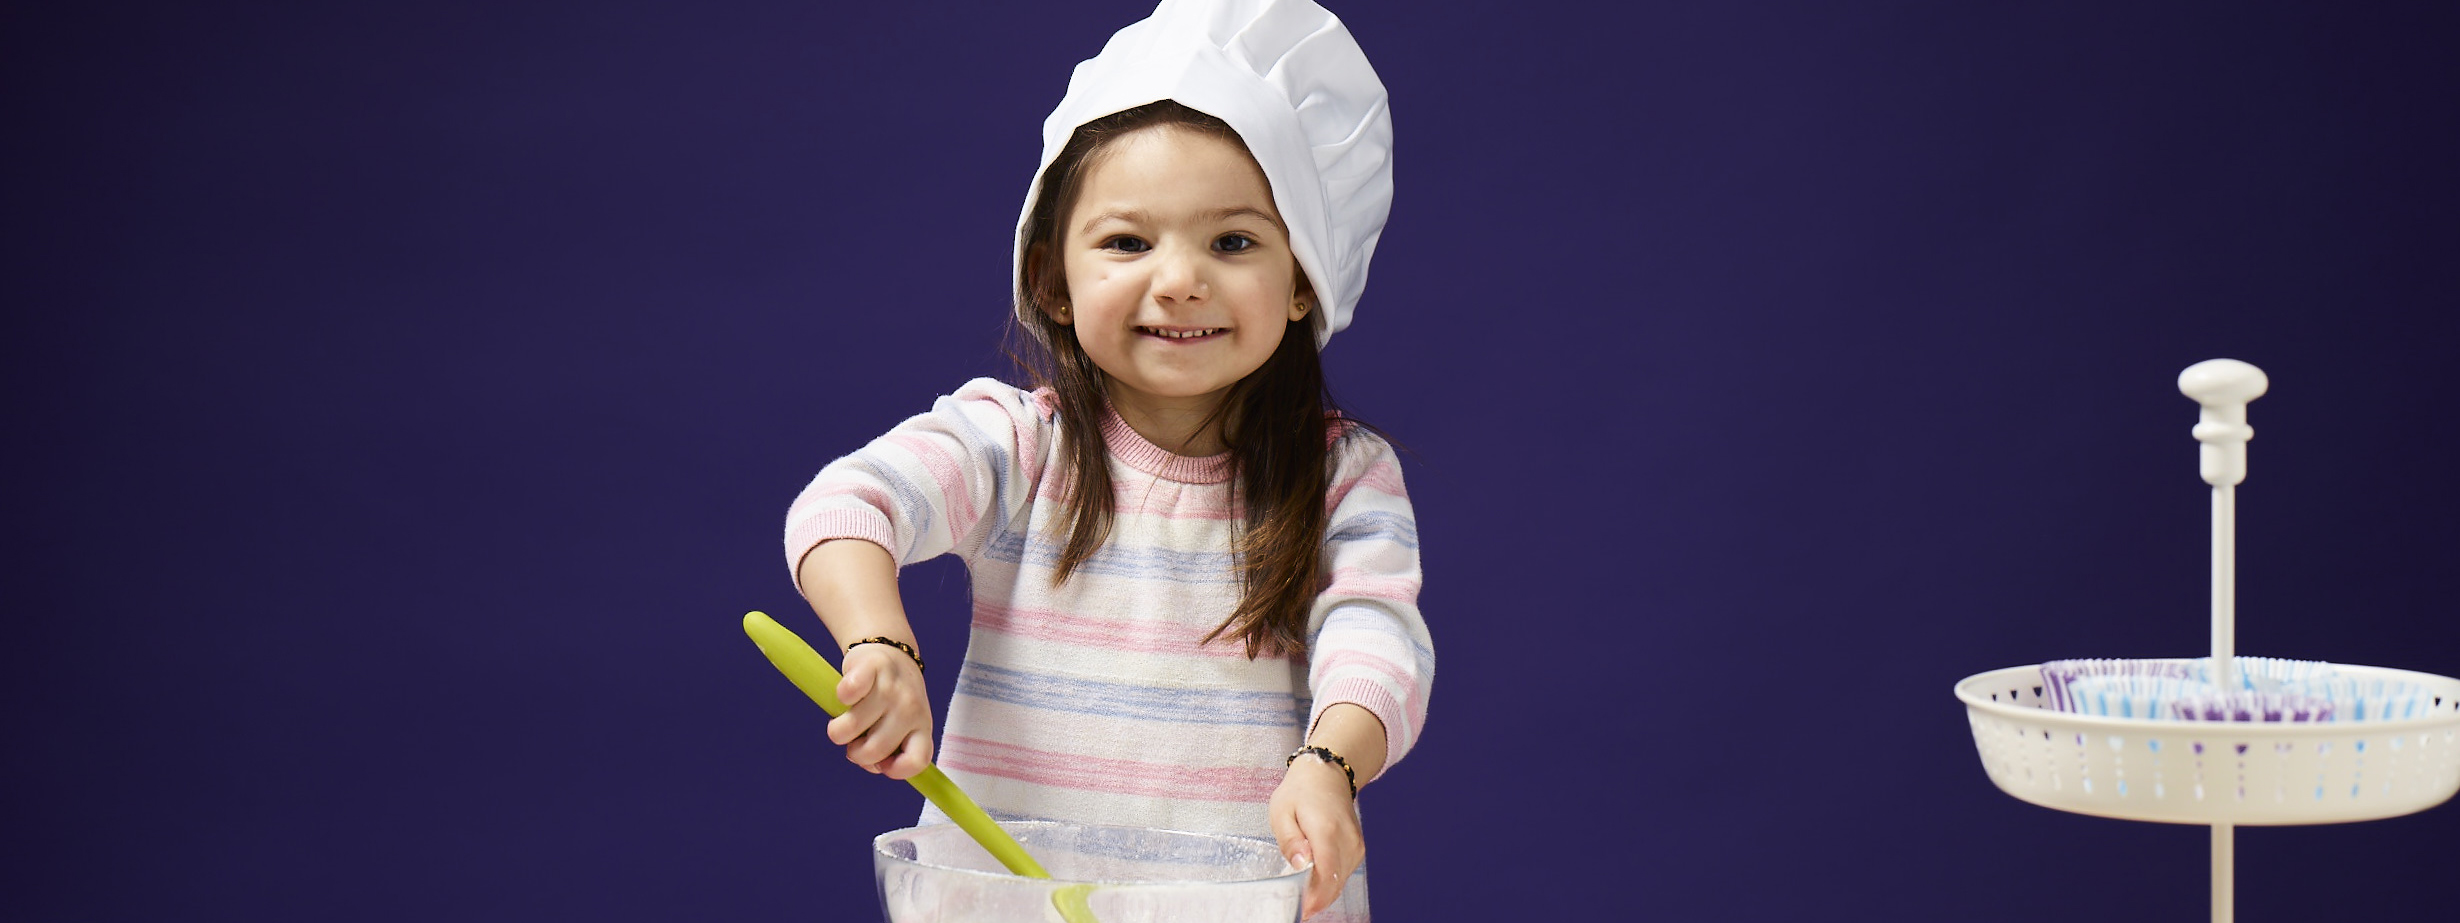 Maia has fun baking for Bake it Better campaign